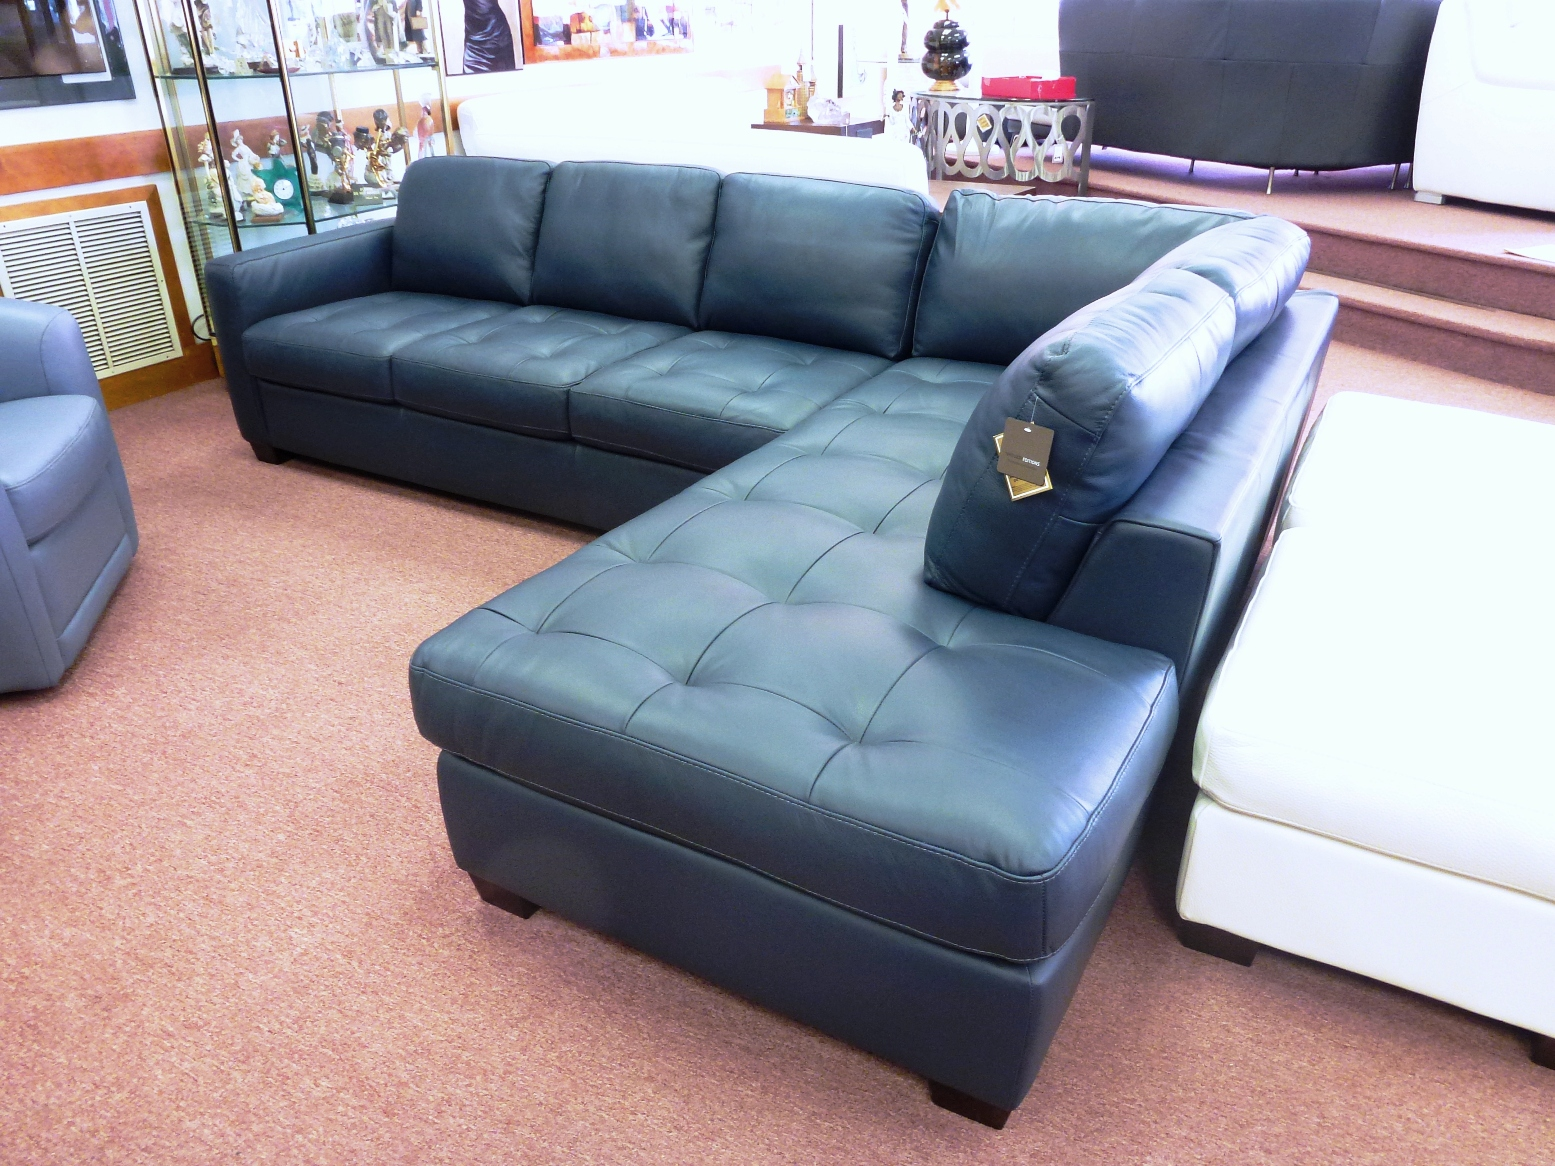 Navy blue sectional sofa design options homesfeed for Blue couches for sale